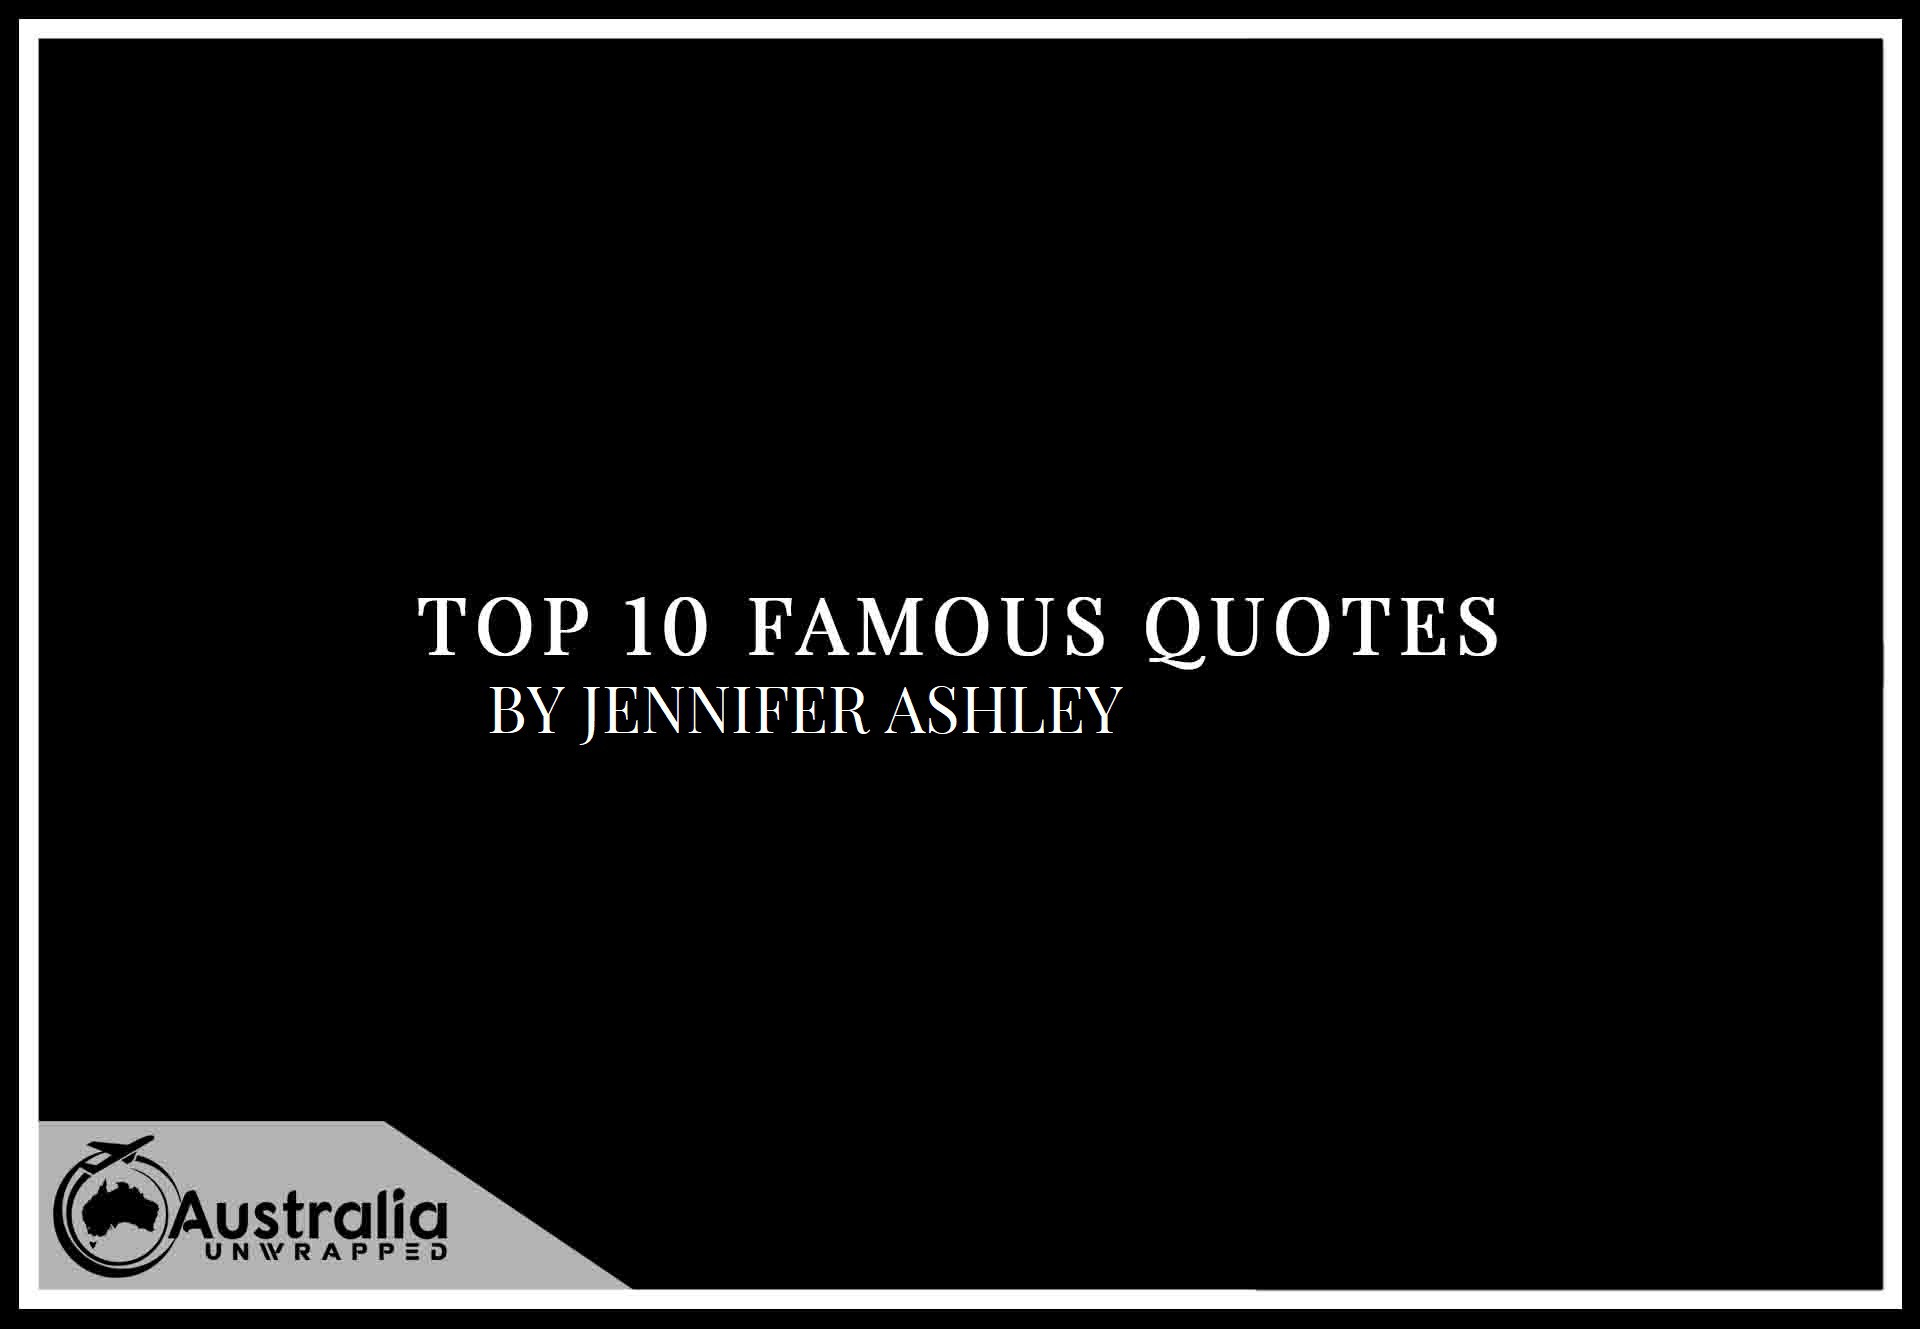 Top 10 Famous Quotes by Author Jennifer Ashley